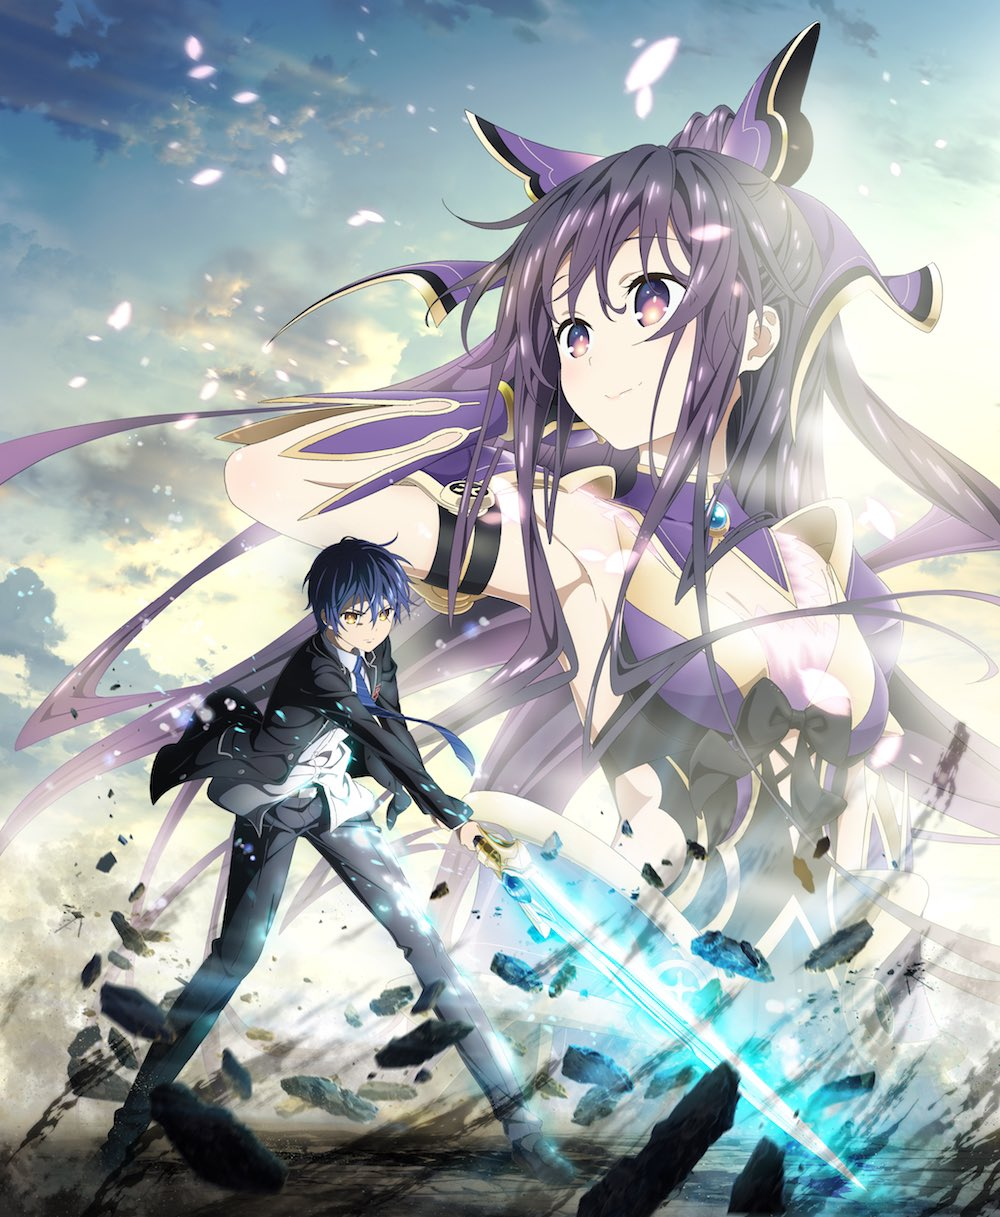 """Date-A-Live-Ⅳ-KV The Date Battle Continues in """"Date A Live IV"""" (Date A Live 4th Season) Fall 2021!!"""